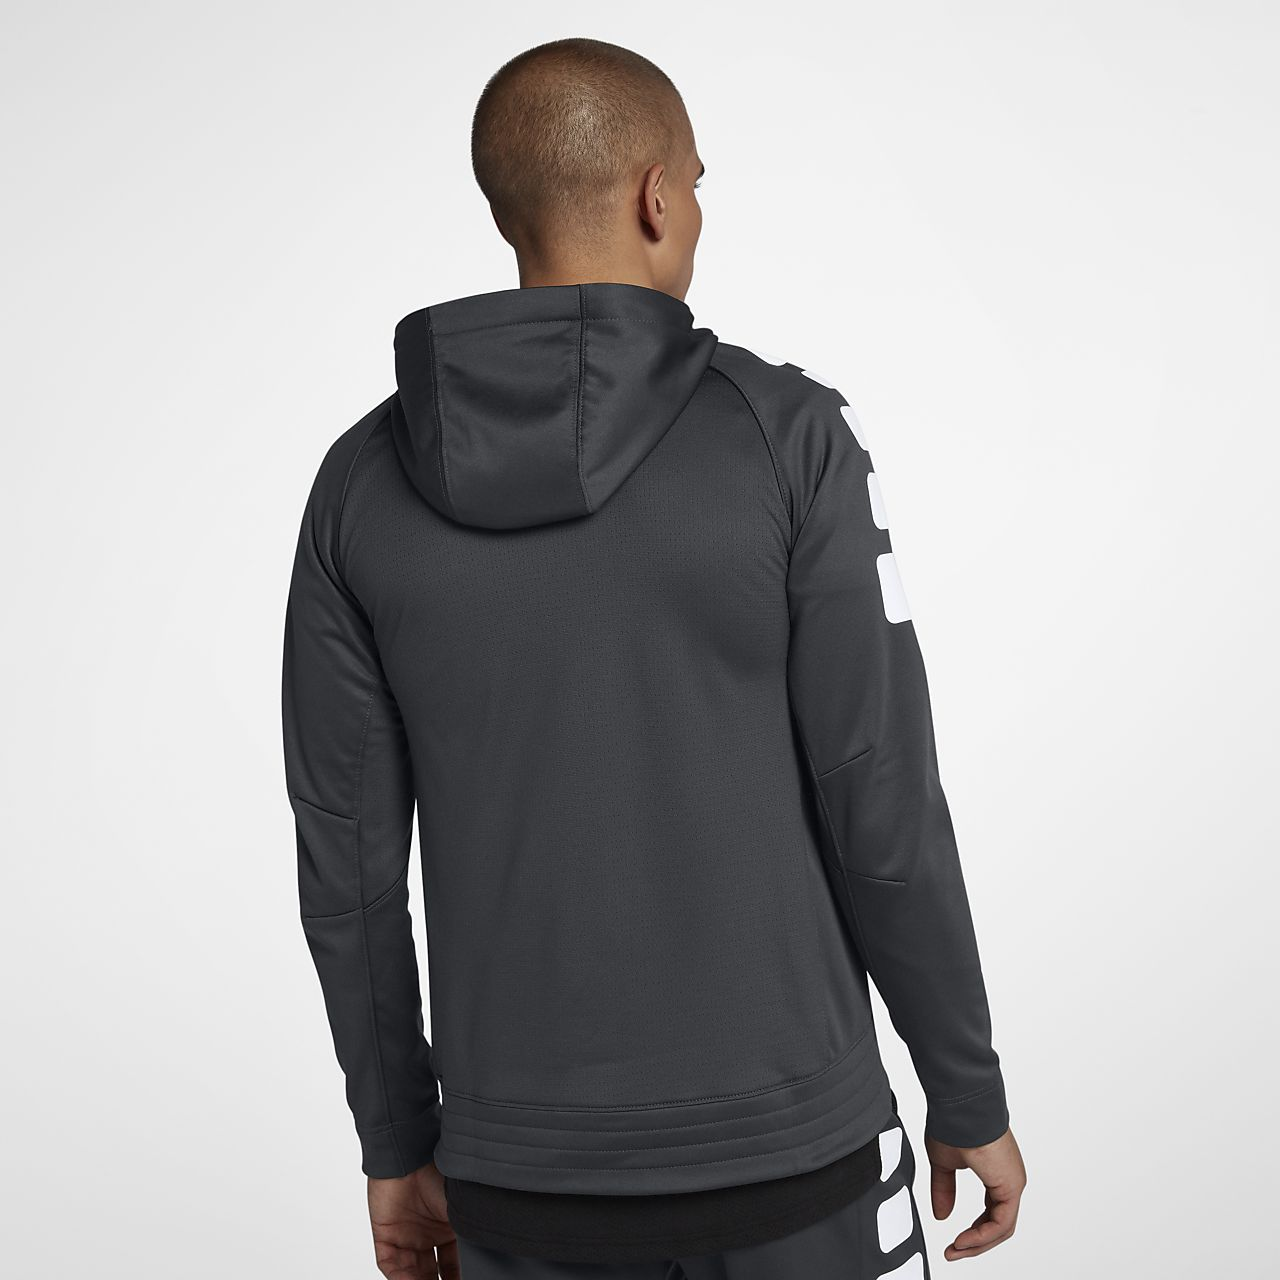 088f28be6103 Nike Therma Elite Men s Basketball Hoodie. Nike.com